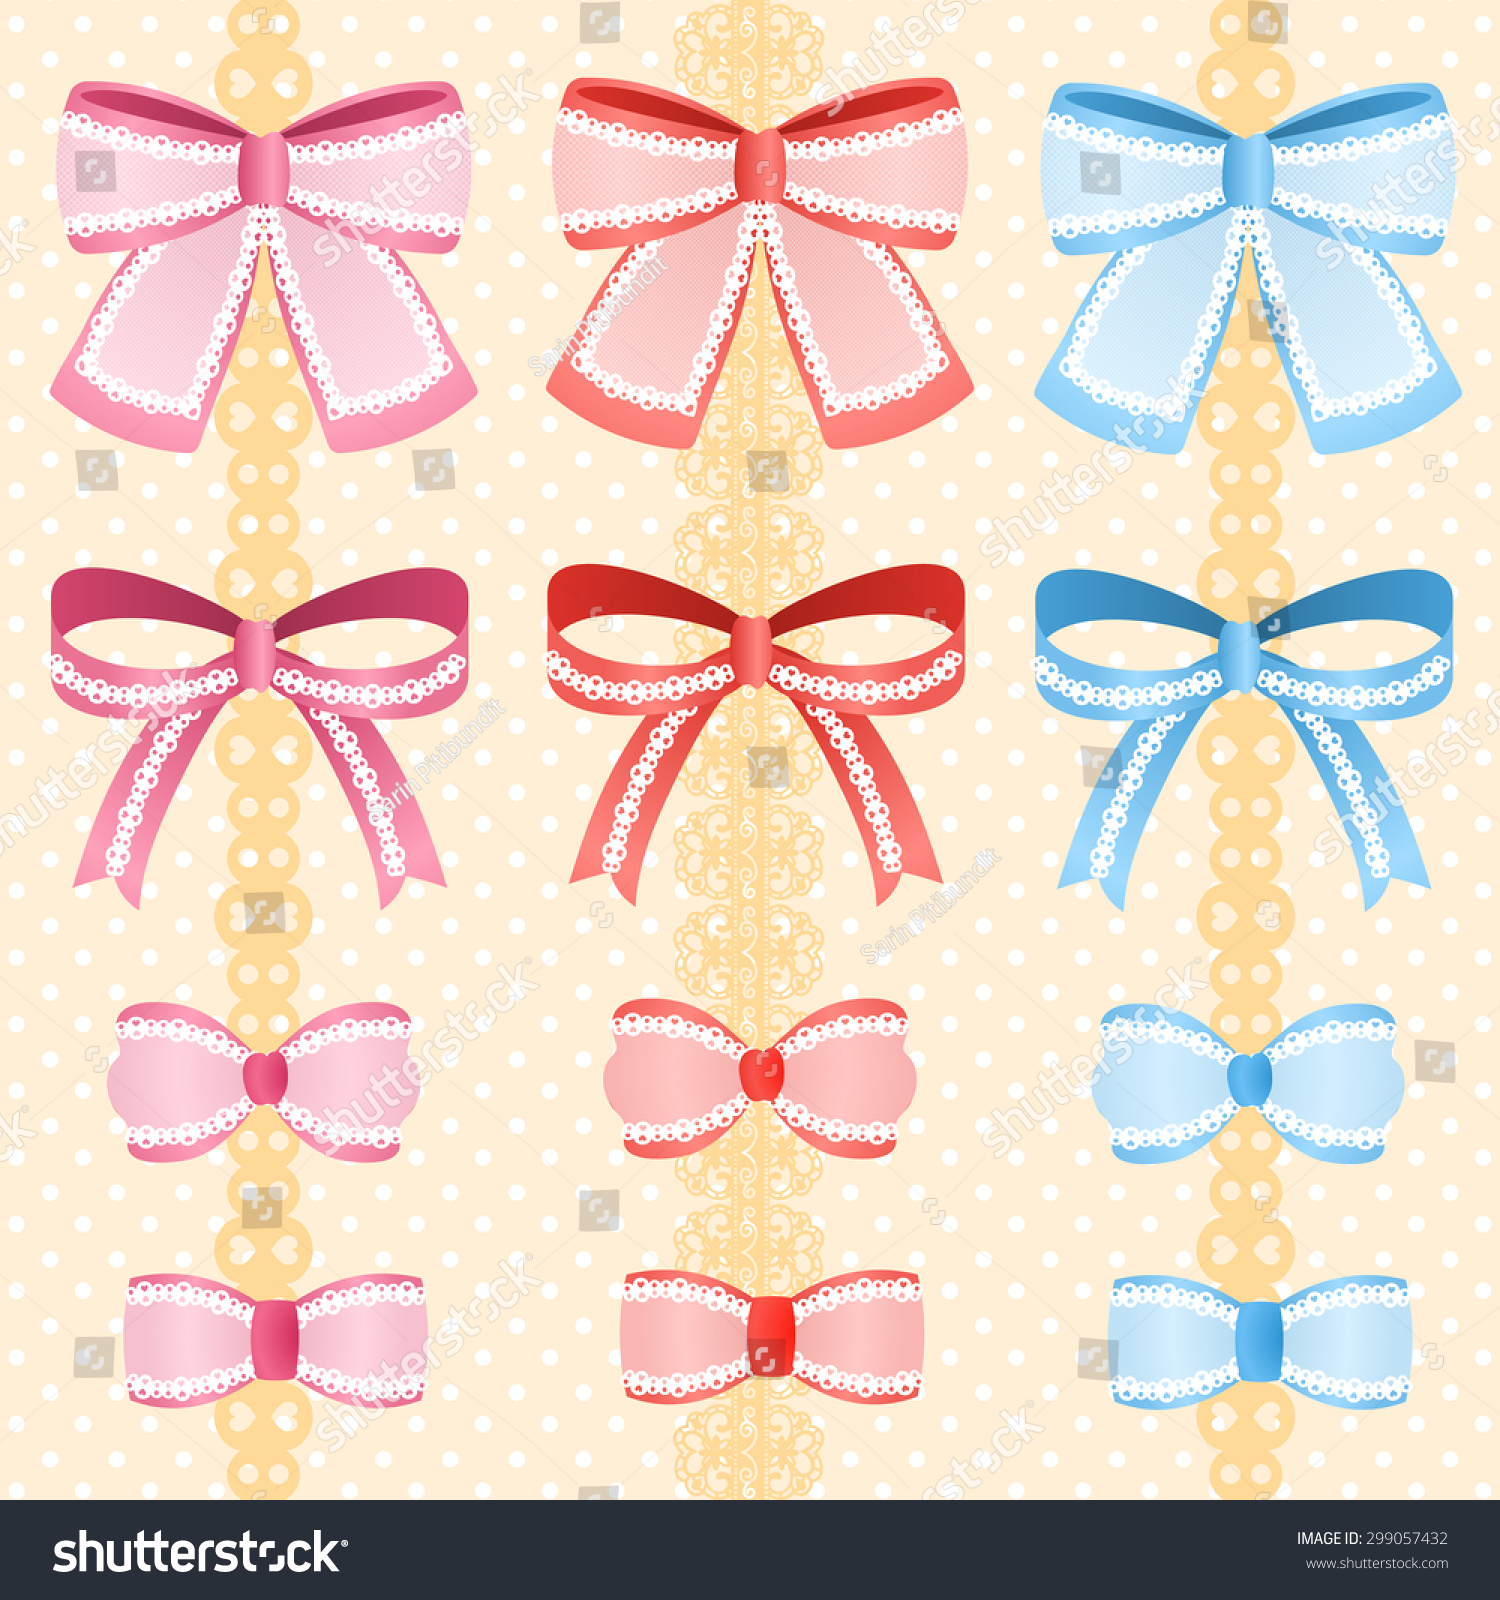 Cute Silky Or Satin Lace Ribbon Bow For Decorate On Background Set